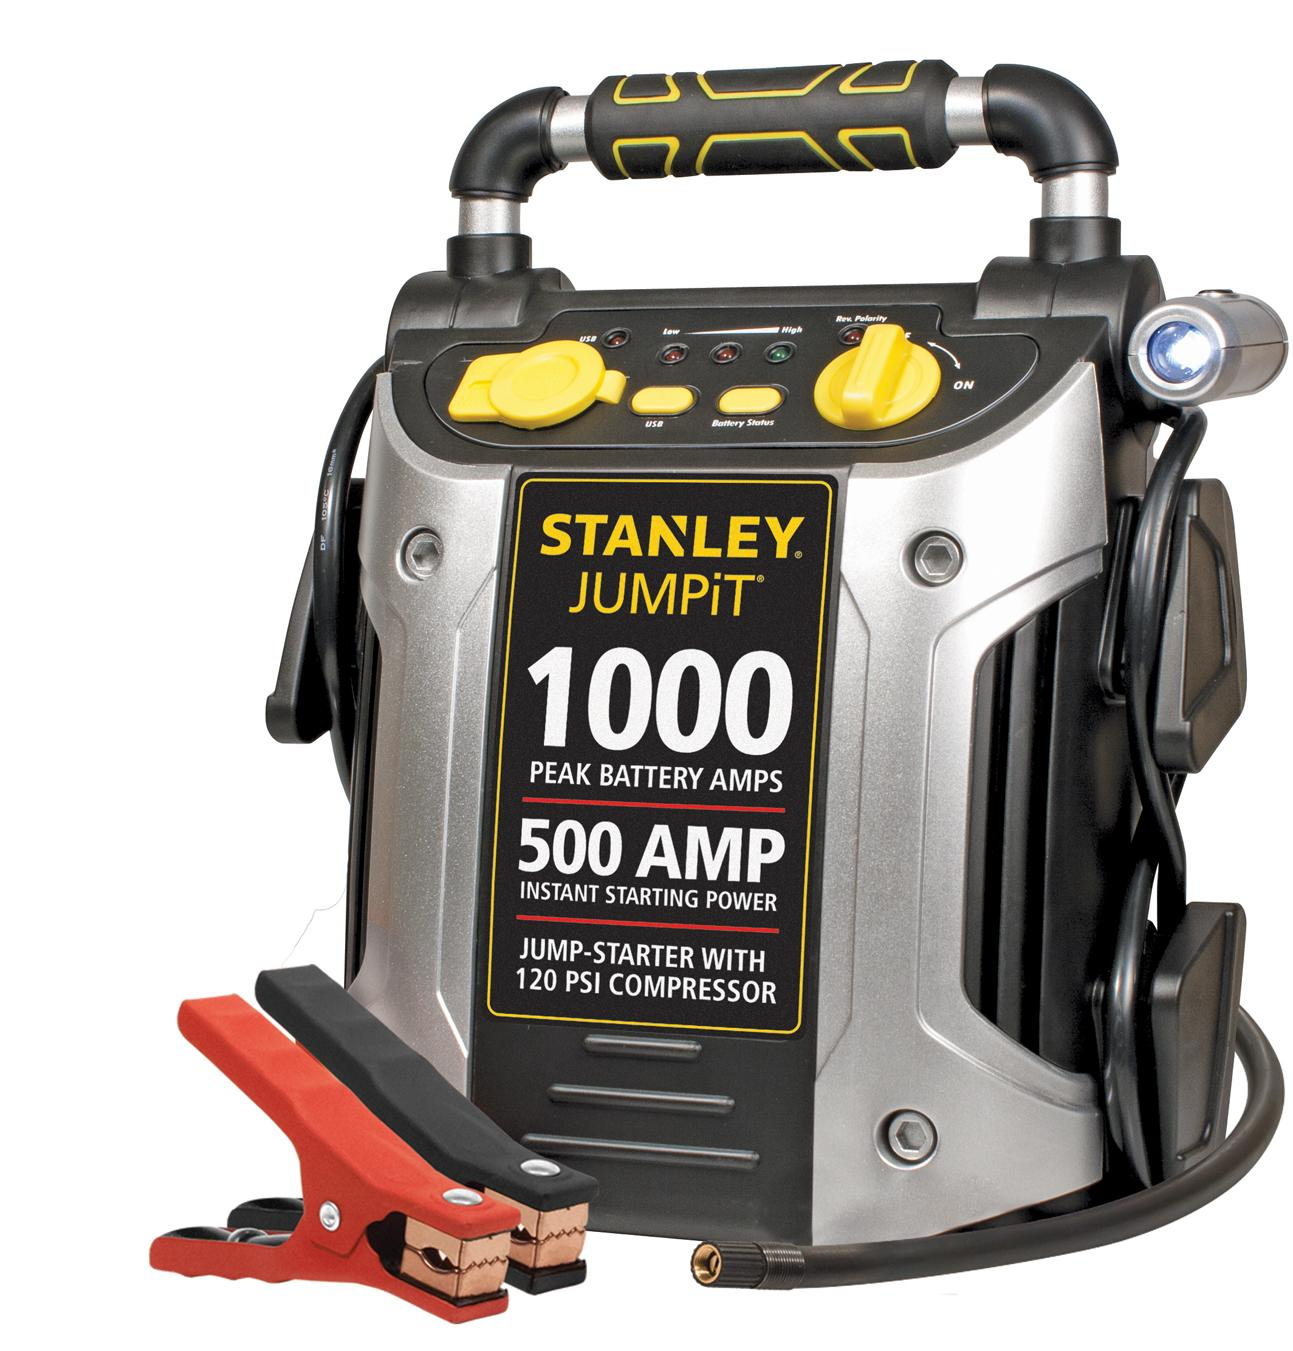 1000 peak amp stanley jump starter compressor car start battery emergency cold ebay. Black Bedroom Furniture Sets. Home Design Ideas